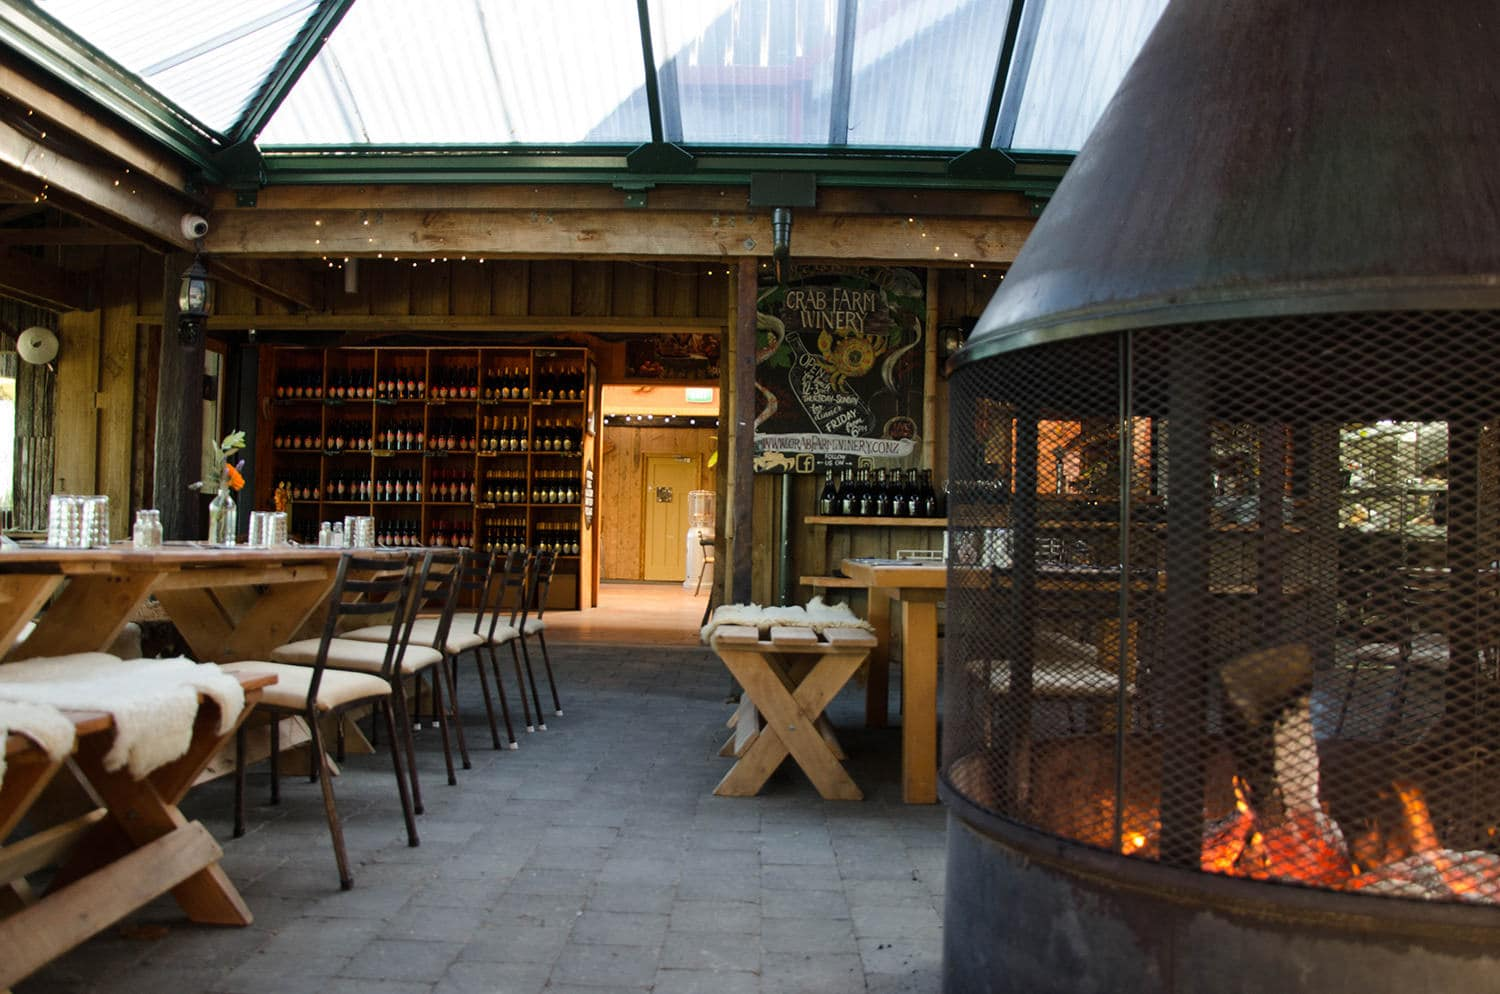 crab-farm-winery-fire-pit-restaurant